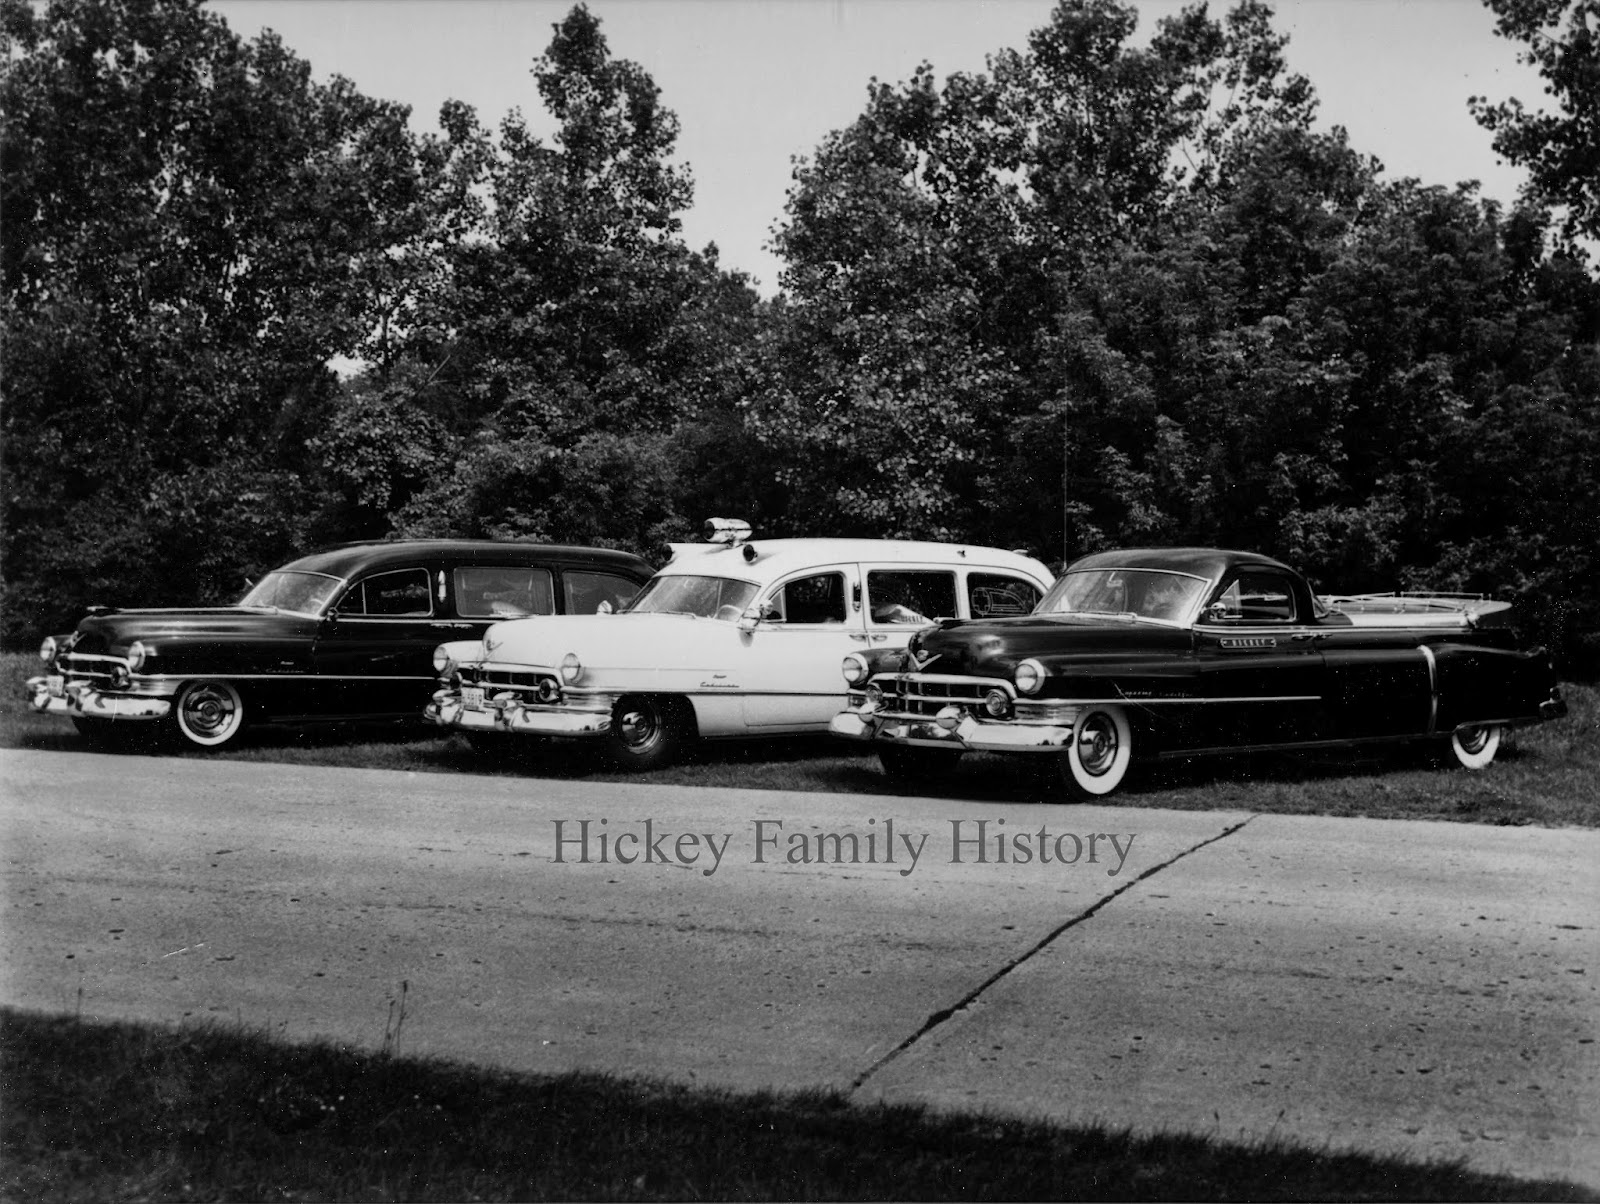 1937 And 1952 Hickey Funeral Home Vehicles Tom And Kate Hickey